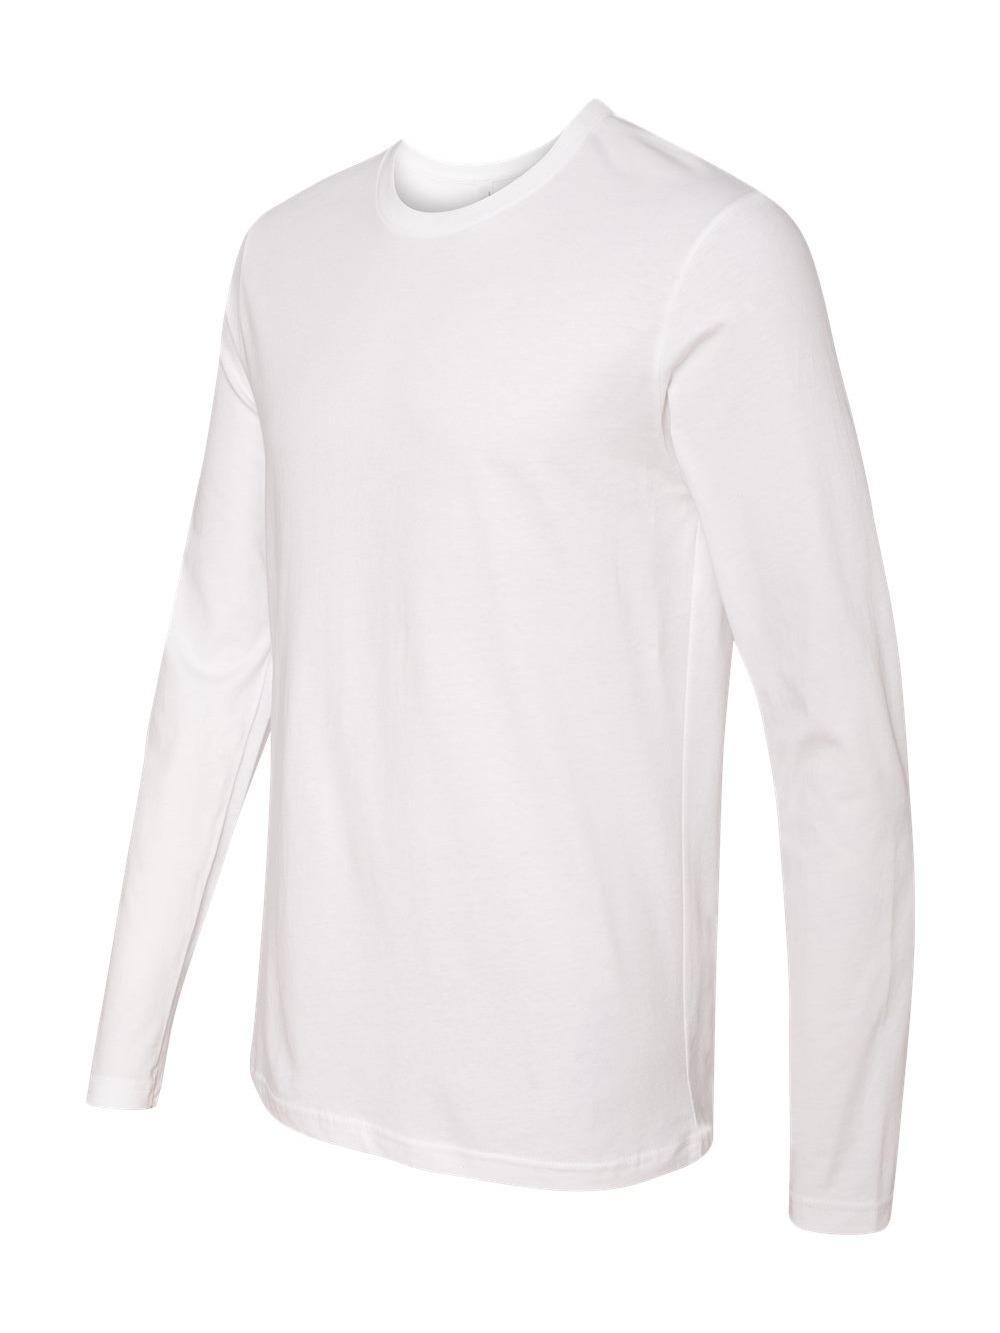 Next Level Mens Premium Fitted Cotton Long Sleeve Crew T Shirt 3601 up to  2xl White S. About this product. Picture 1 of 4  Picture 2 of 4  Picture 3  of 4 ... ca1025d82b97d